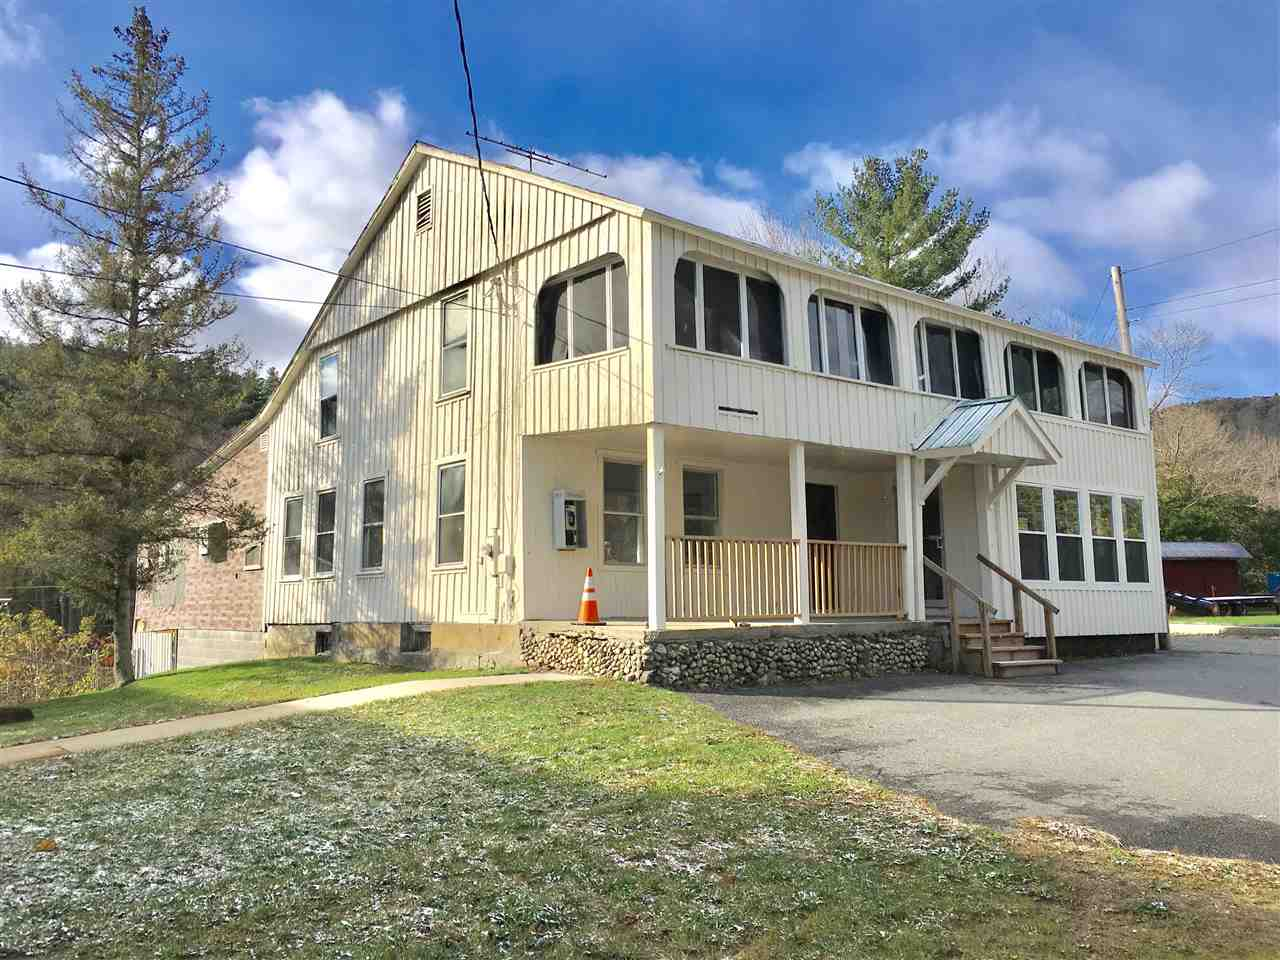 CAVENDISH VT Commercial Property for sale $$124,900 | $39 per sq.ft.